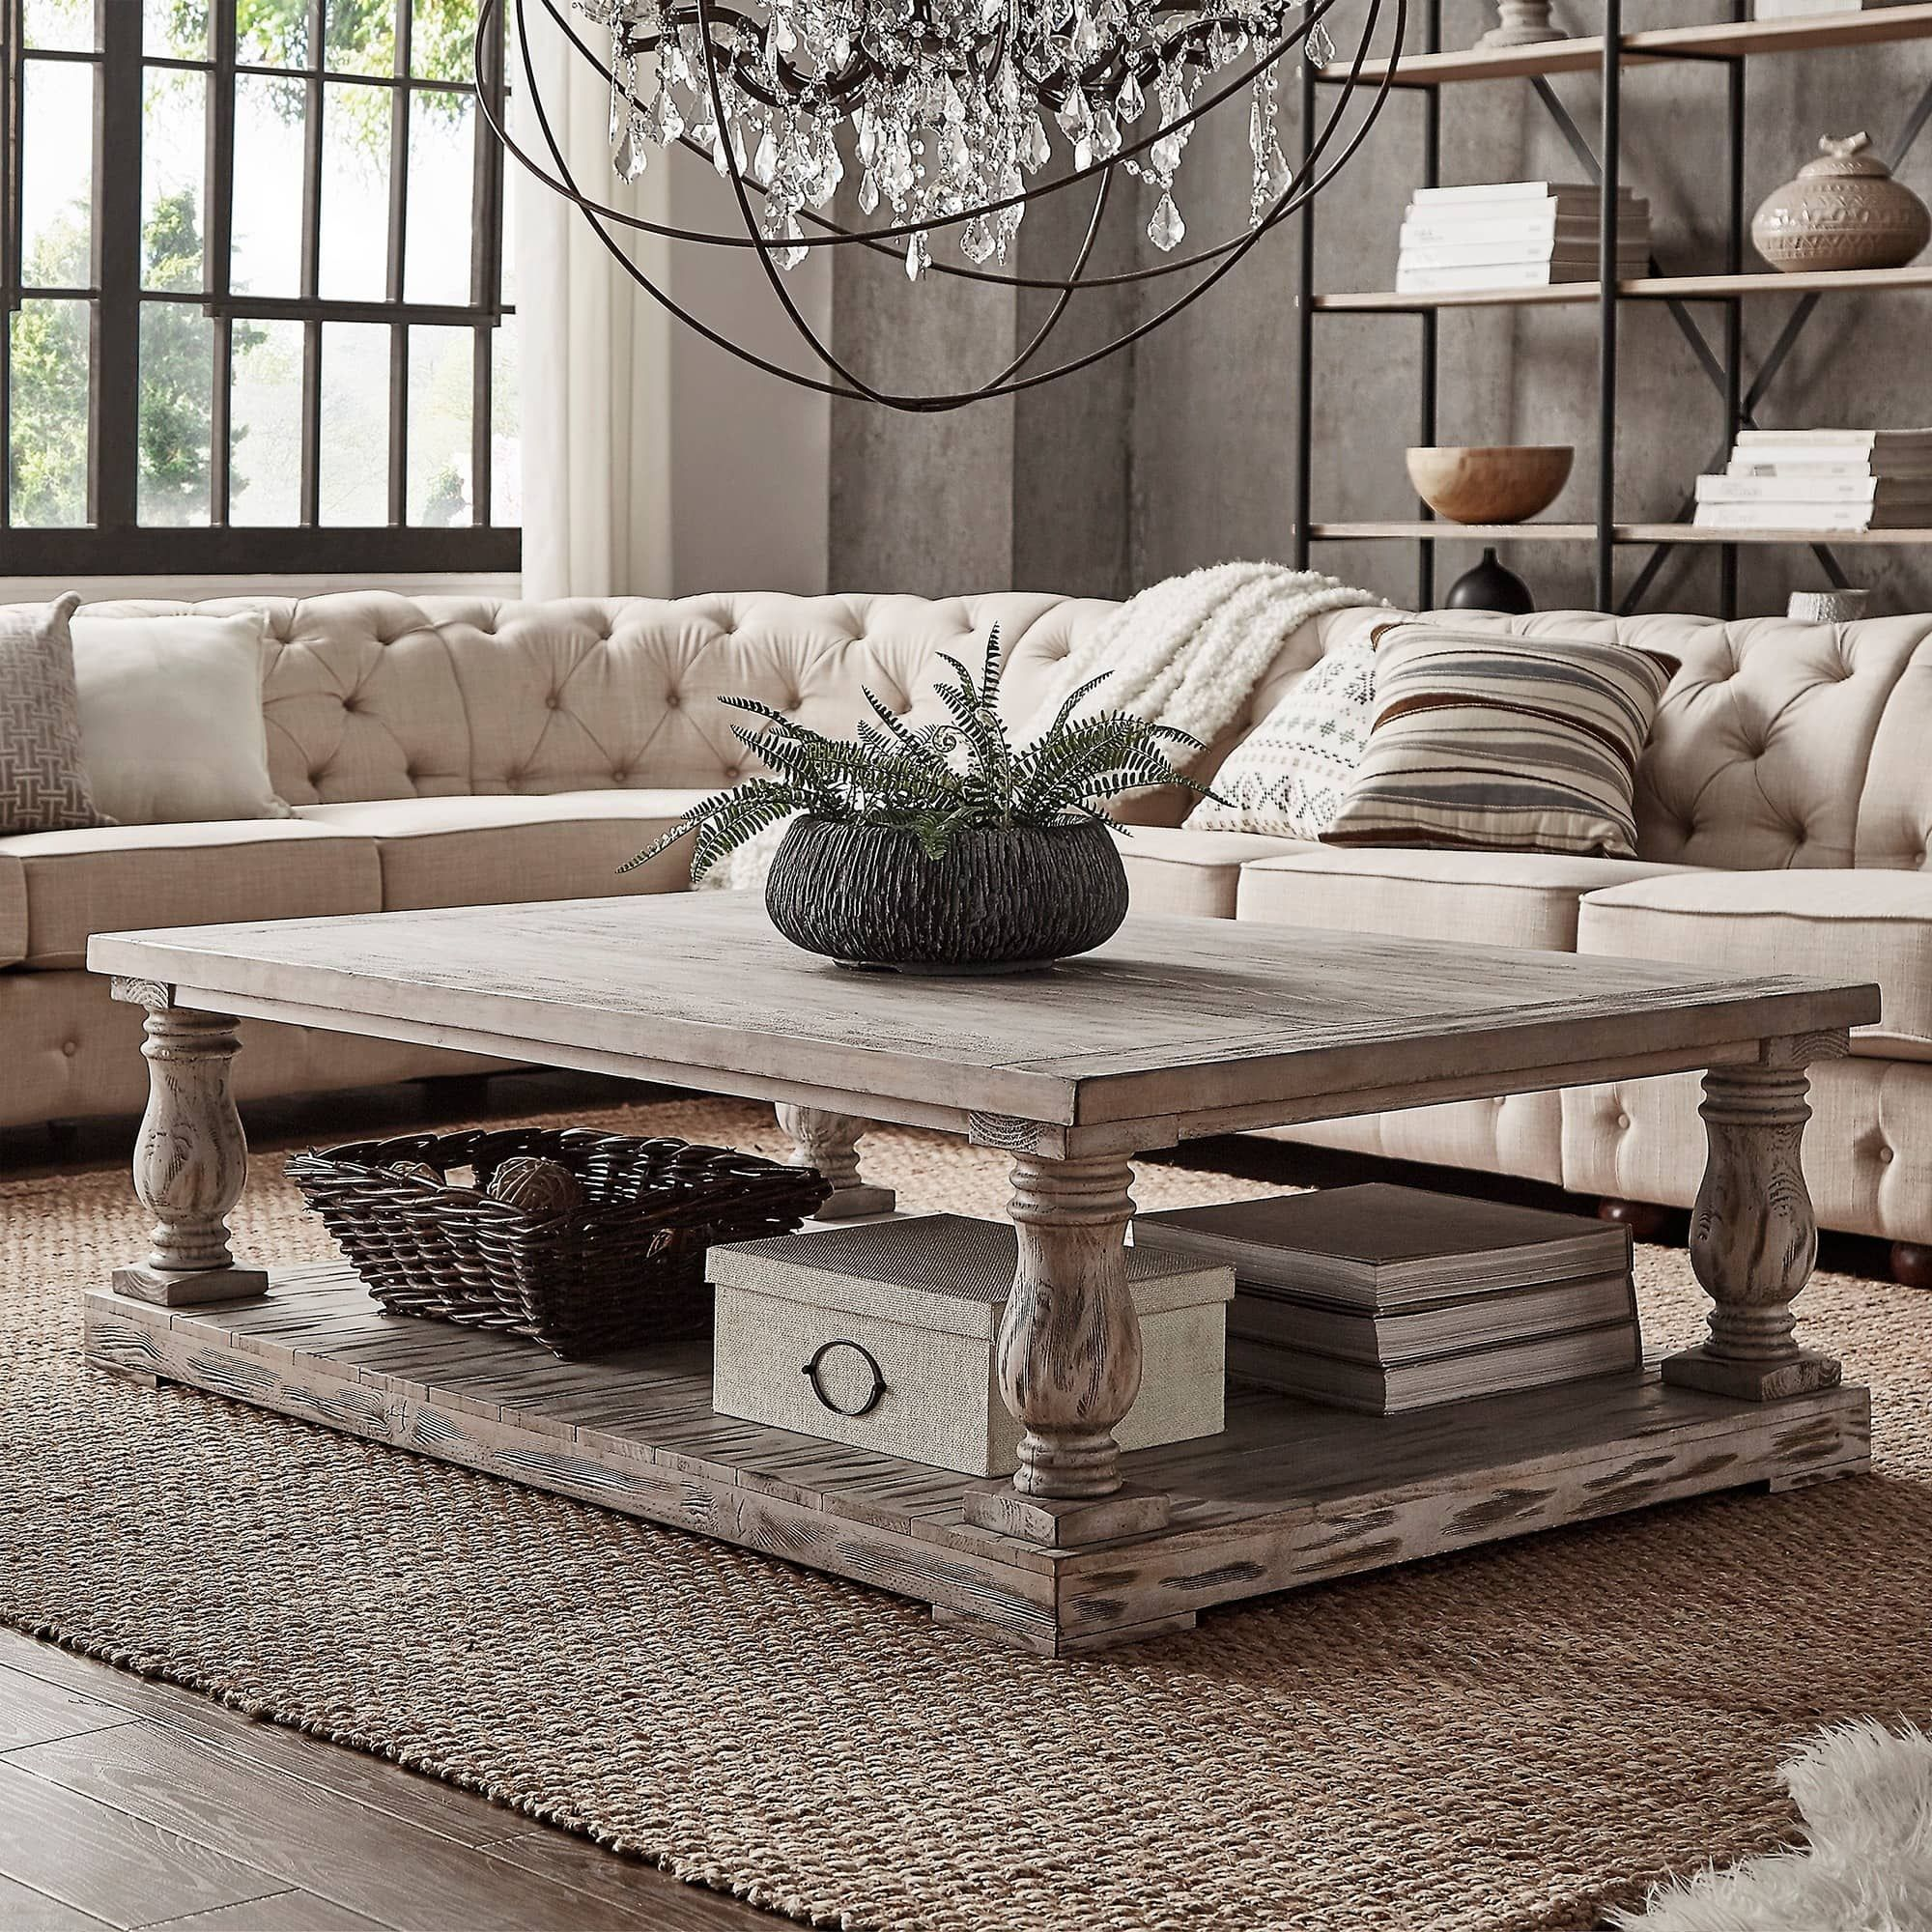 Edmaire Rustic Baluster 60-inch Coffee Table by iNSPIRE Q Artisan ...